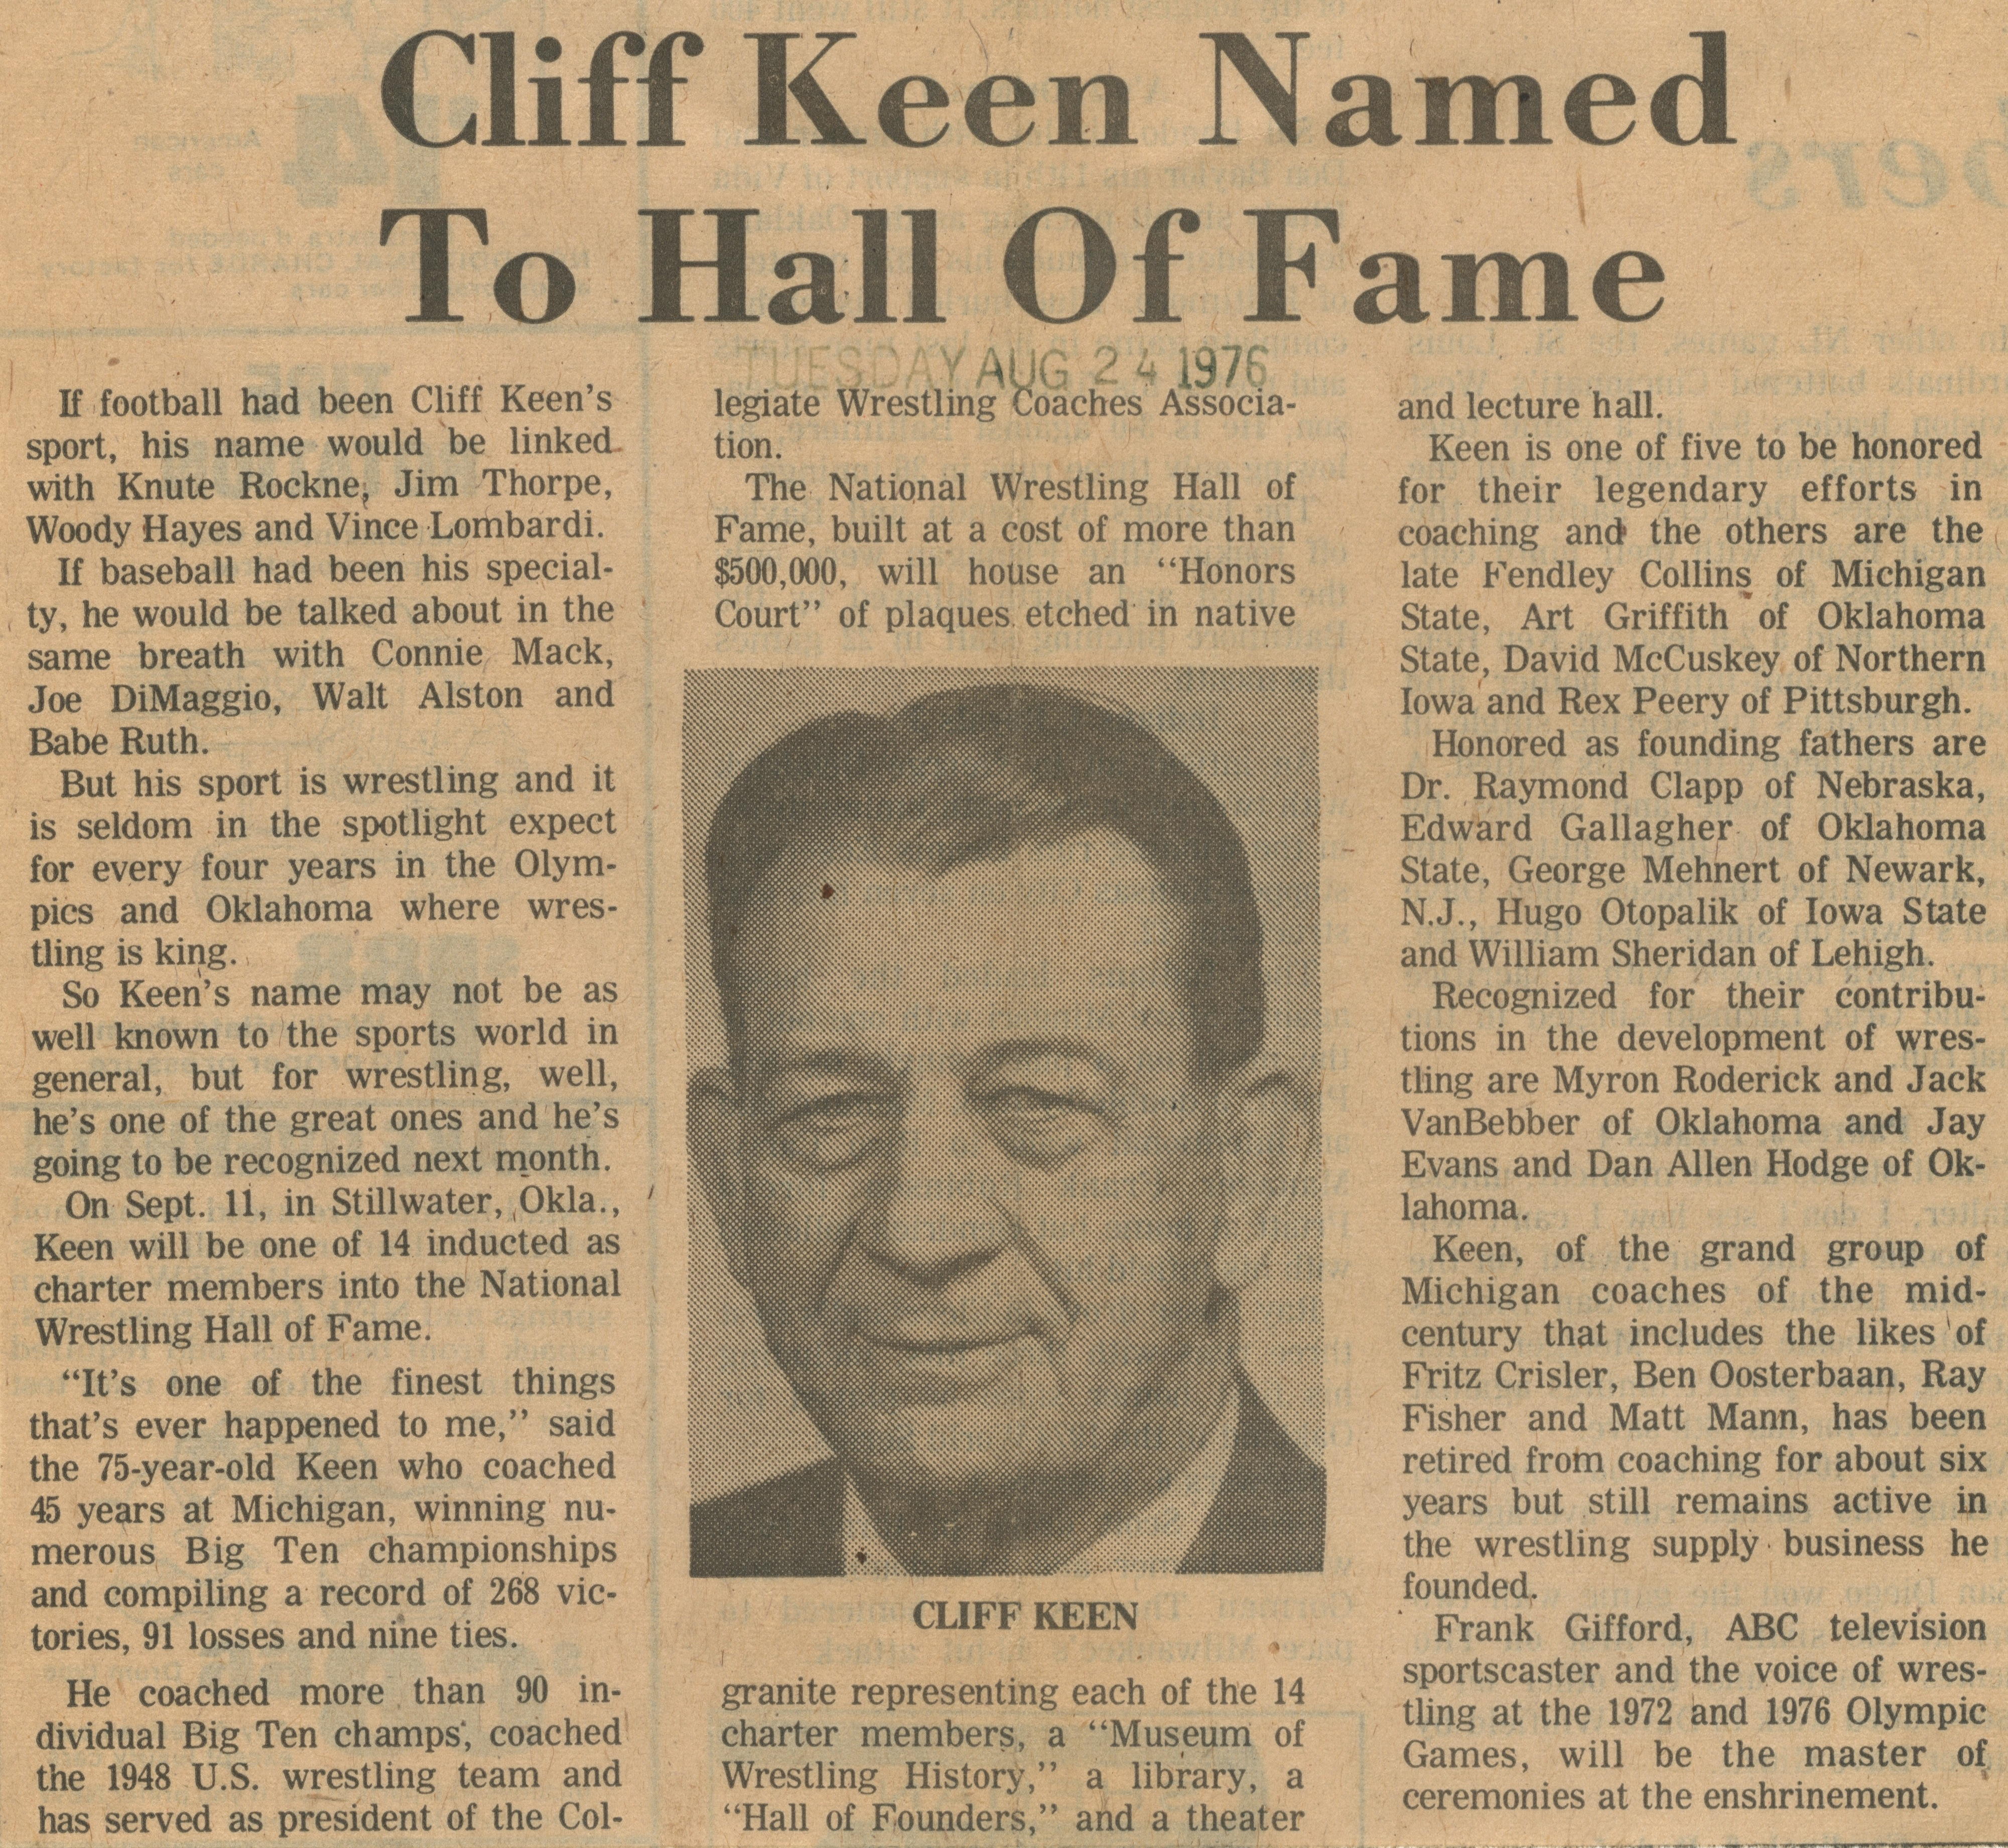 Cliff Keen Named To Hall of Fame image